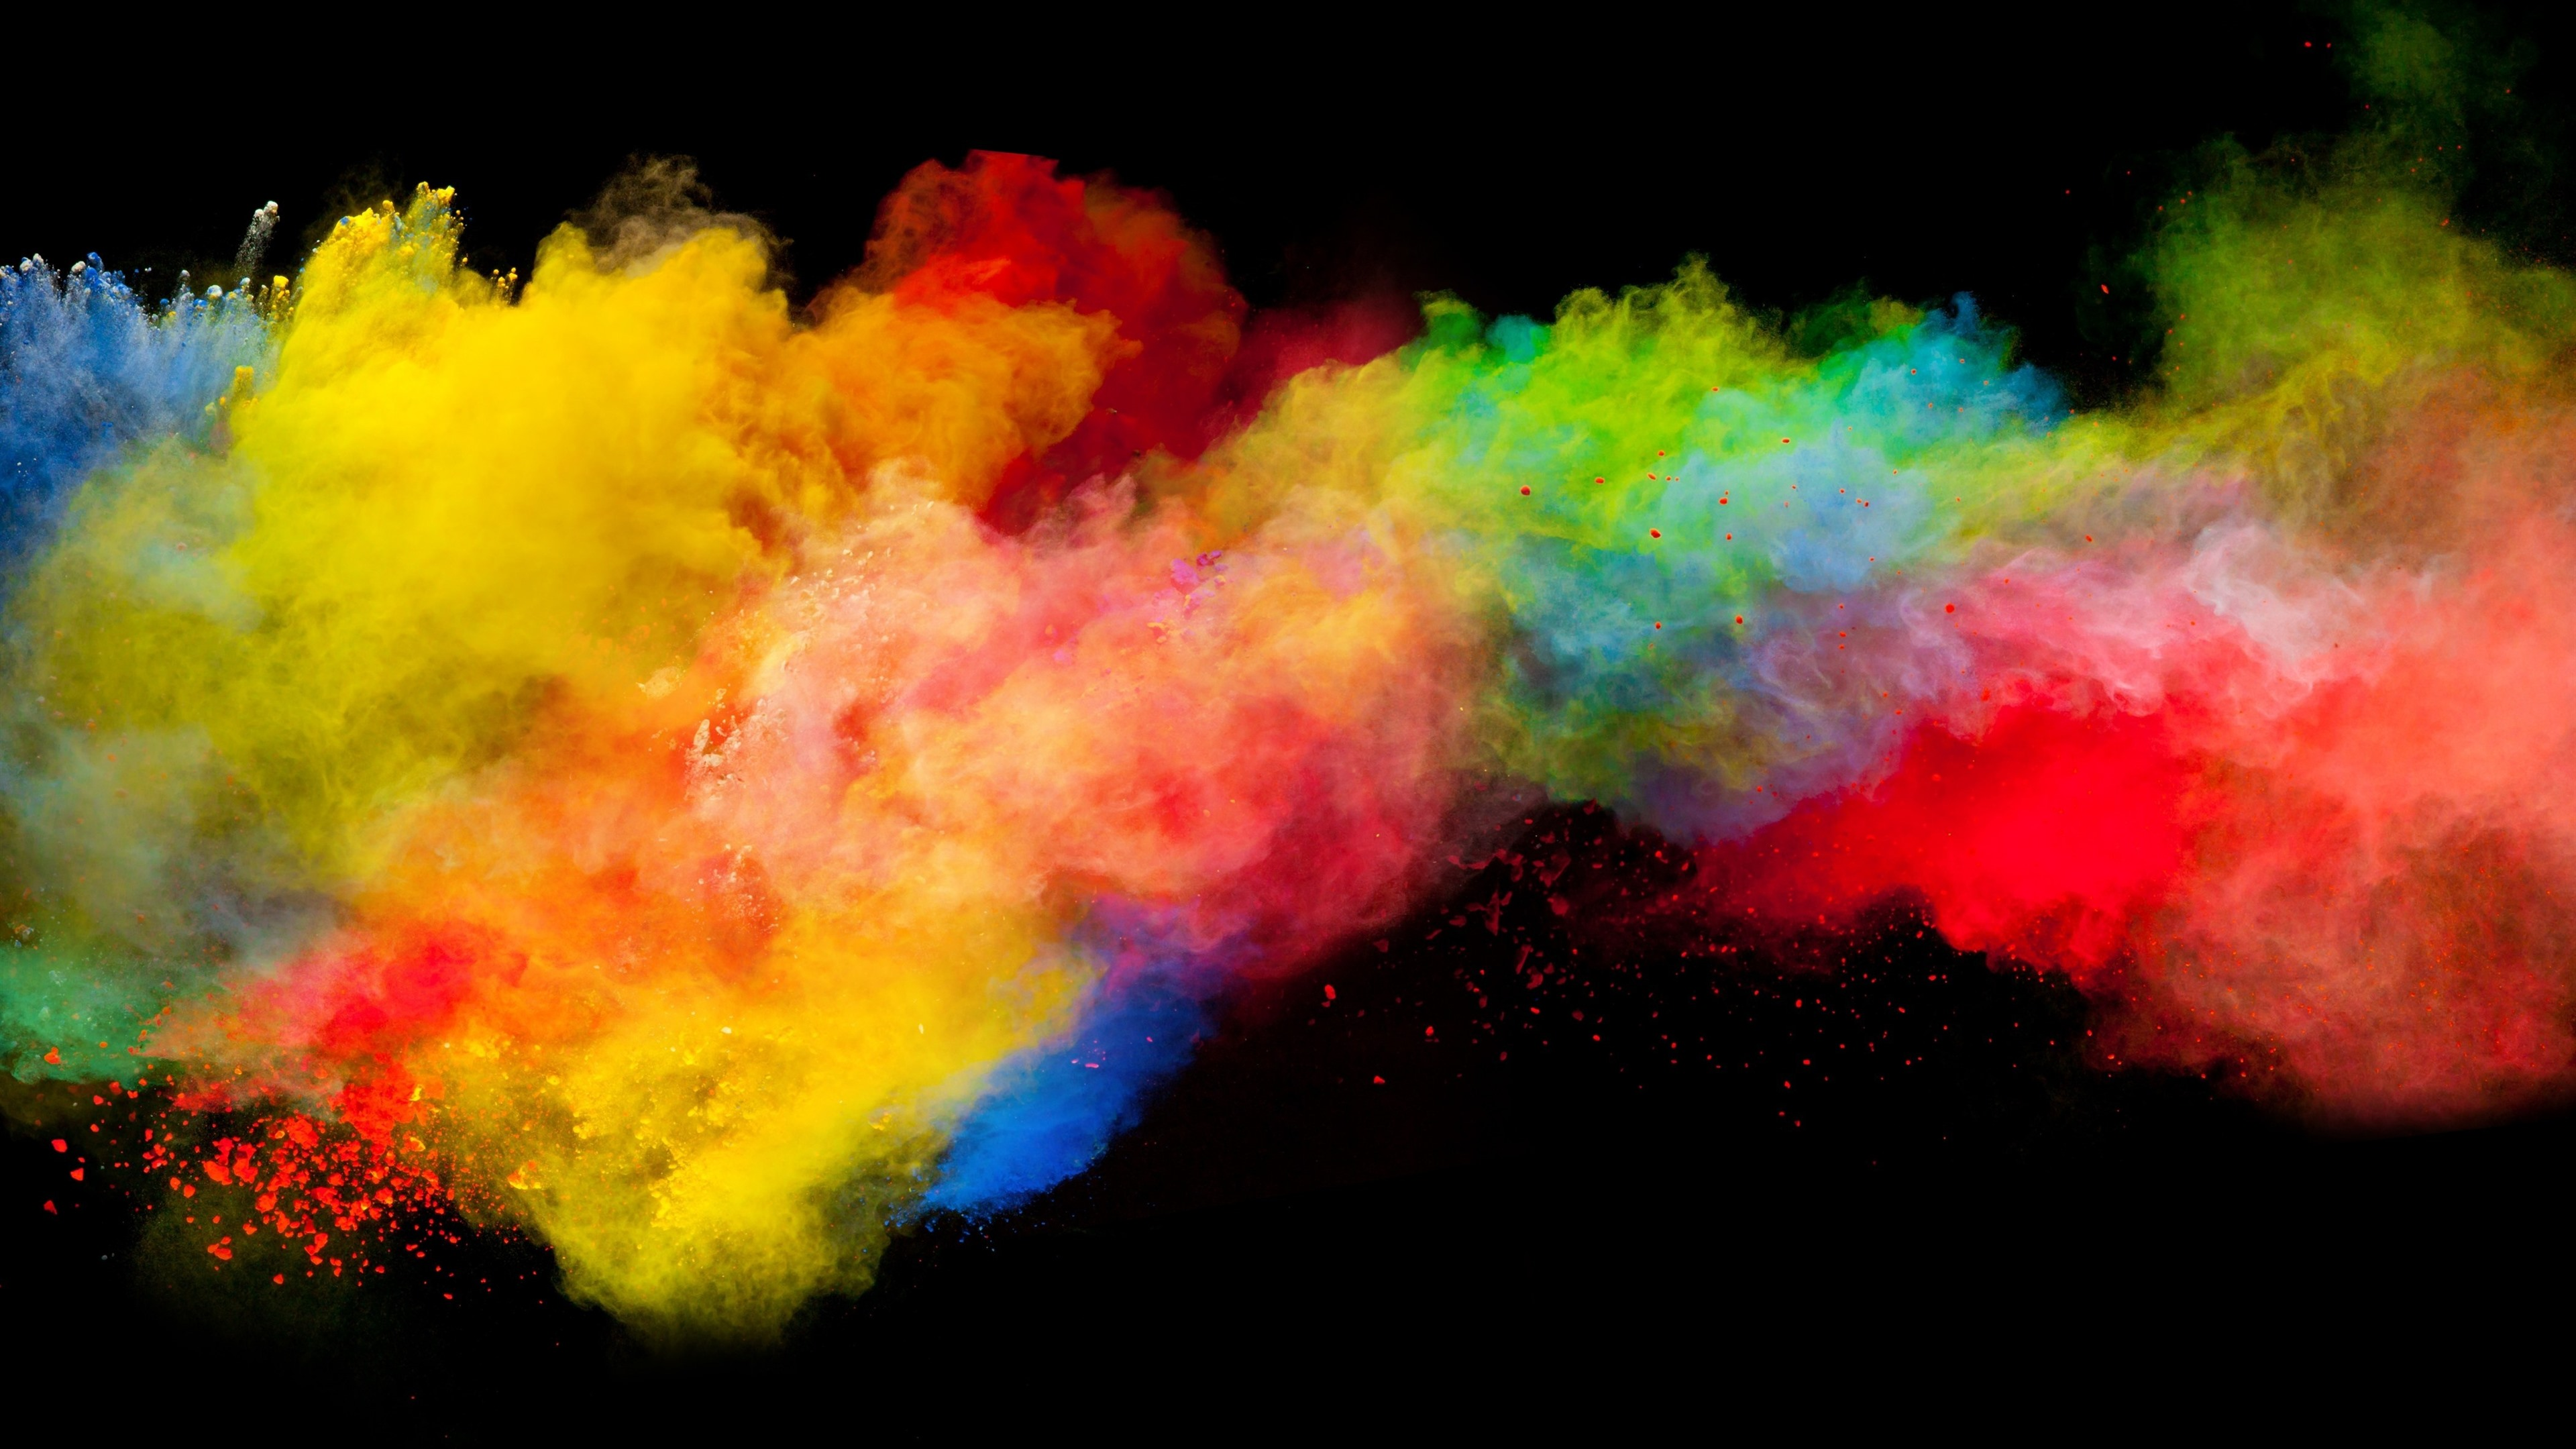 Wallpaper Colorful Smoke, Rainbow Colors, Black Background - Explosion Of Colour - HD Wallpaper